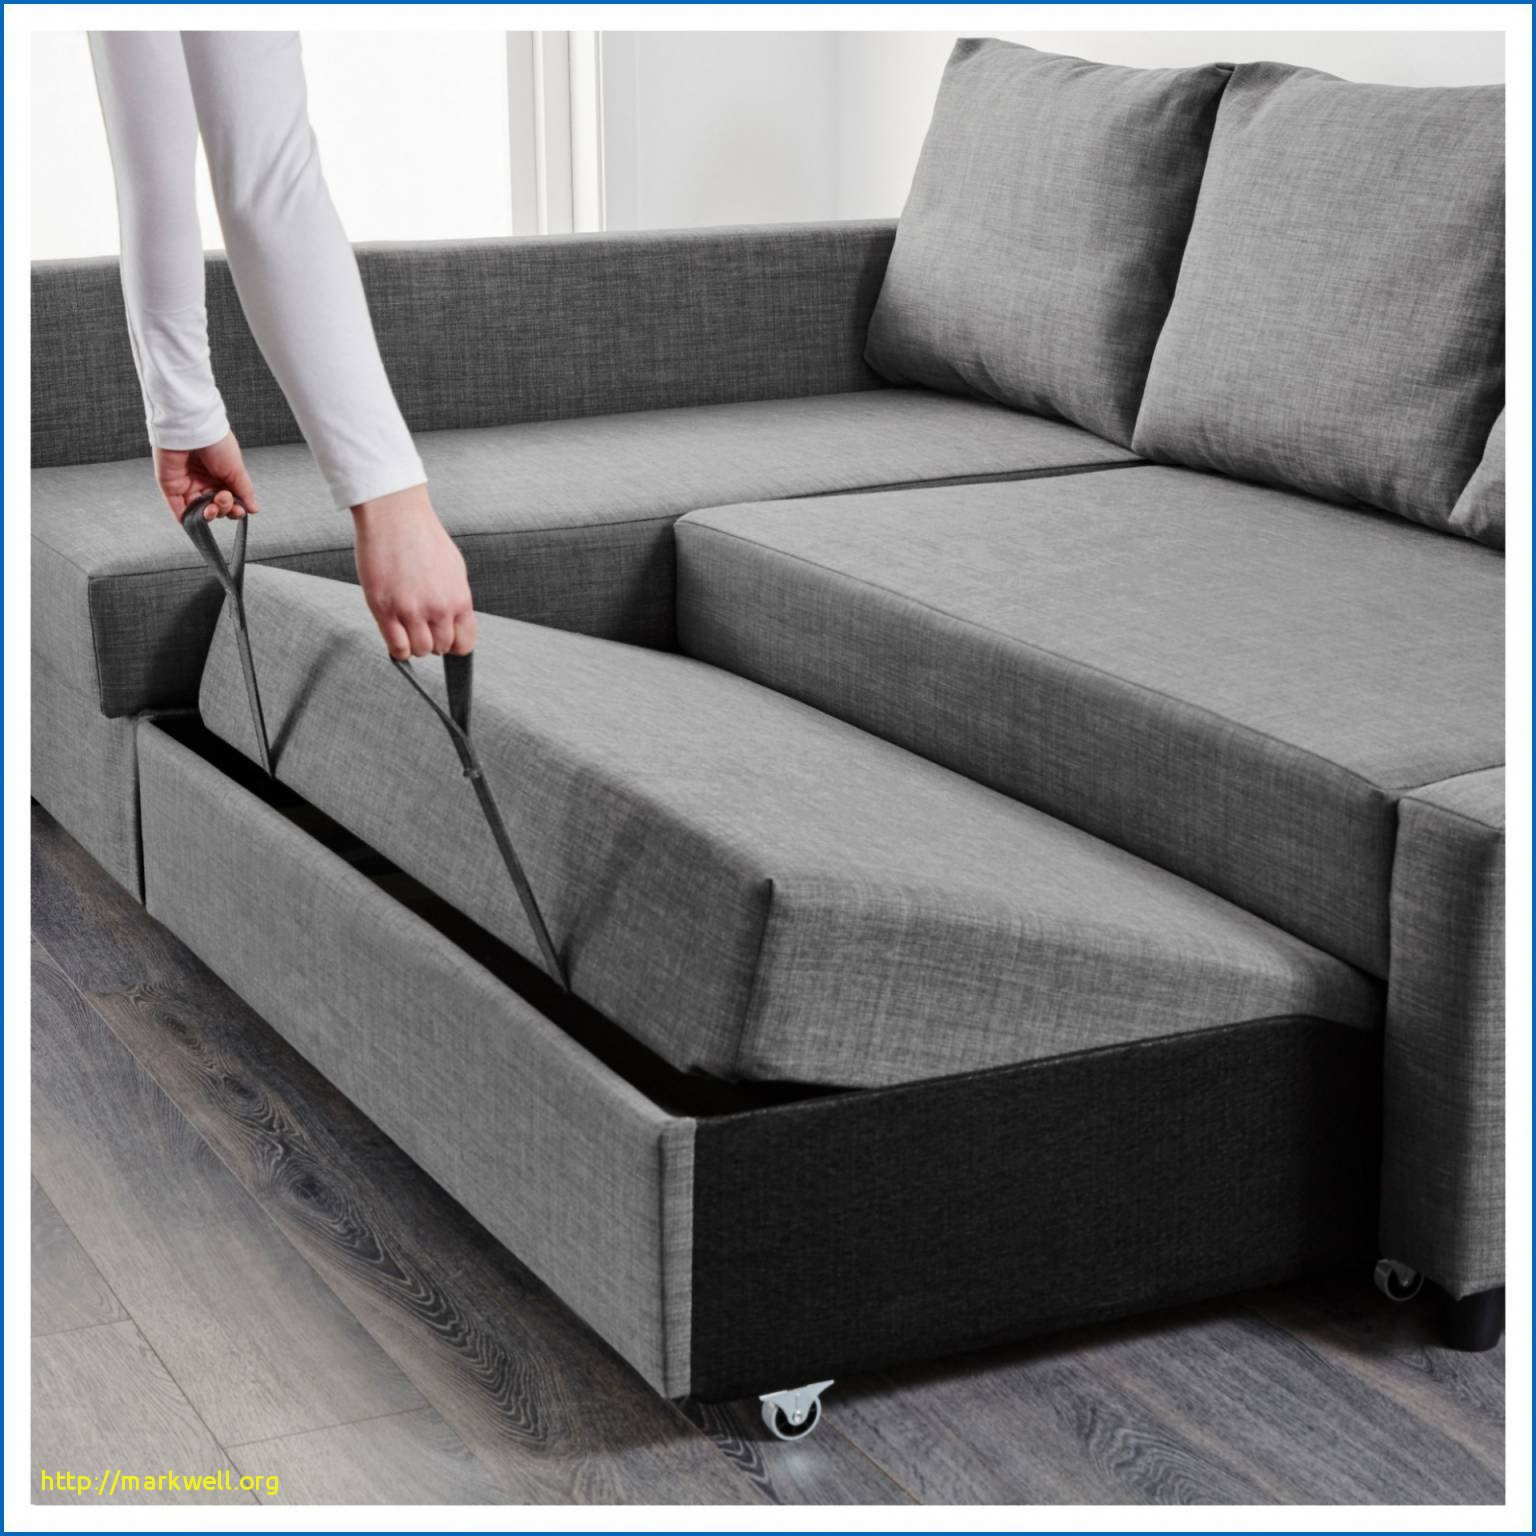 Sofa Bed for Bedroom Inspirational Unique Living Room Accent Furniture